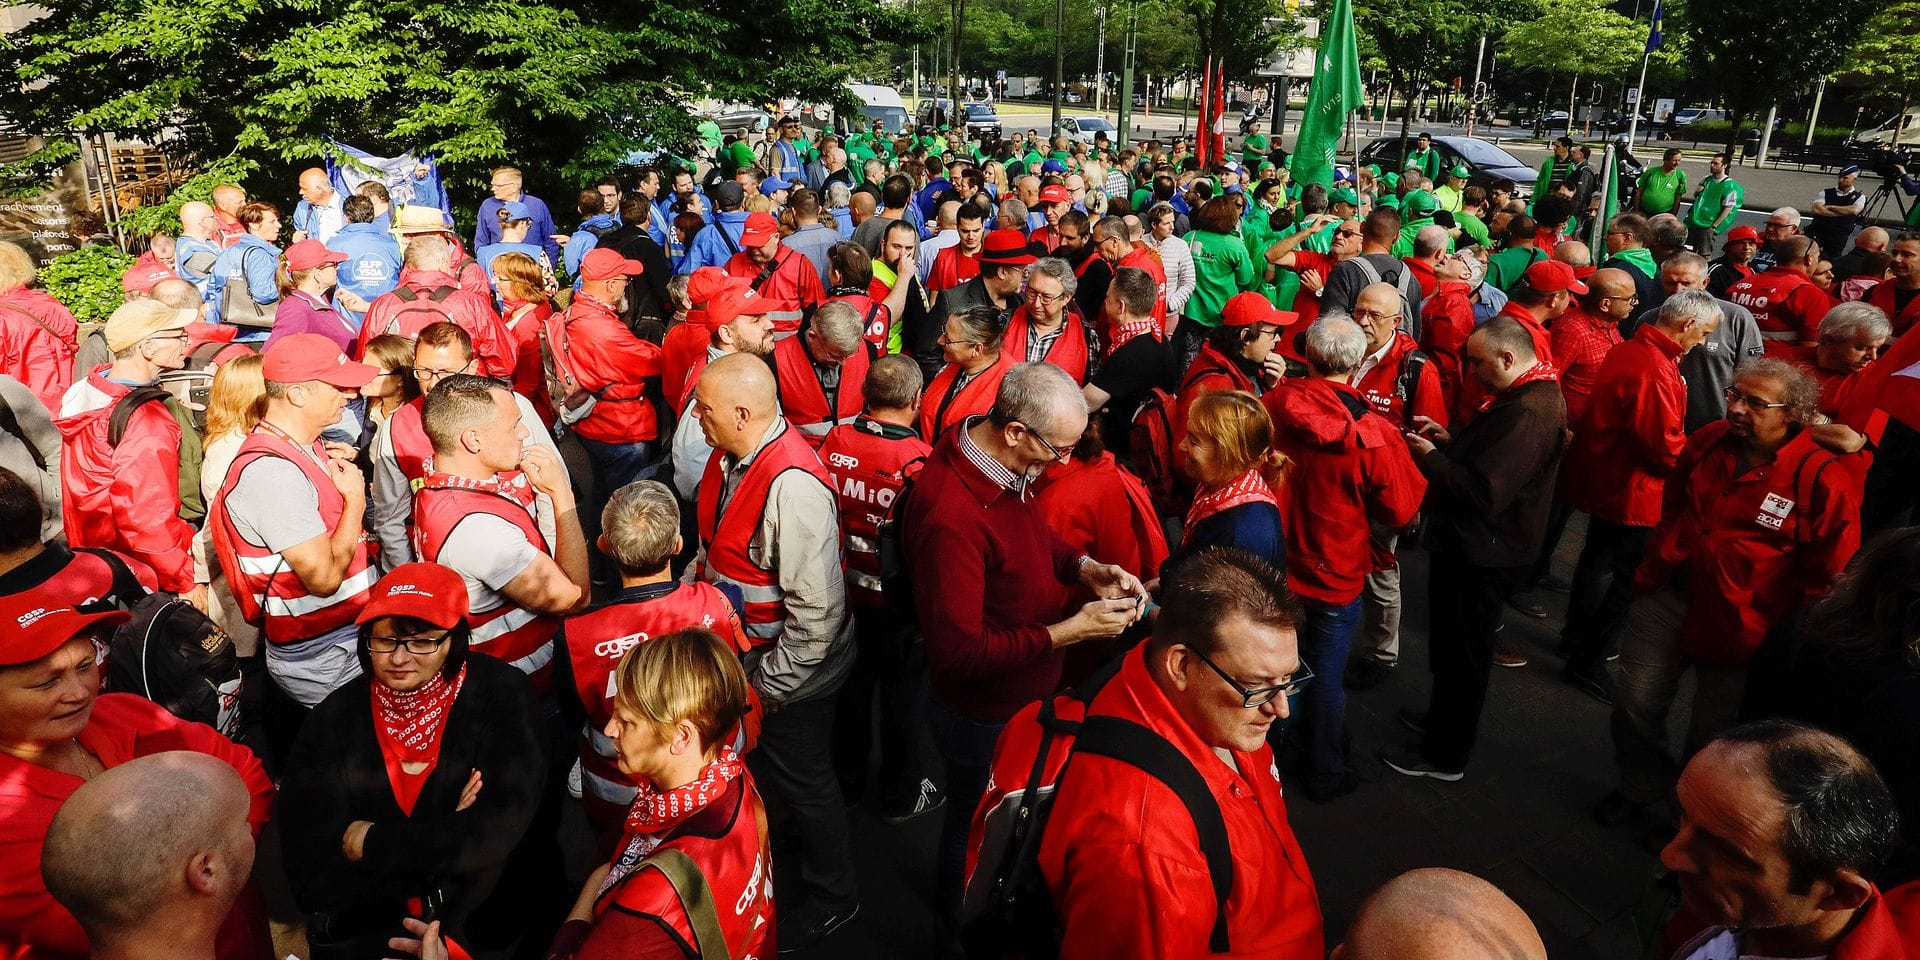 Members of unions take part in a demonstration of the unions of the public services to protest against the reform of federal public fonction, Wednesday 06 June 2018, in front of the WTC III tower in Brussels. BELGA PHOTO THIERRY ROGE